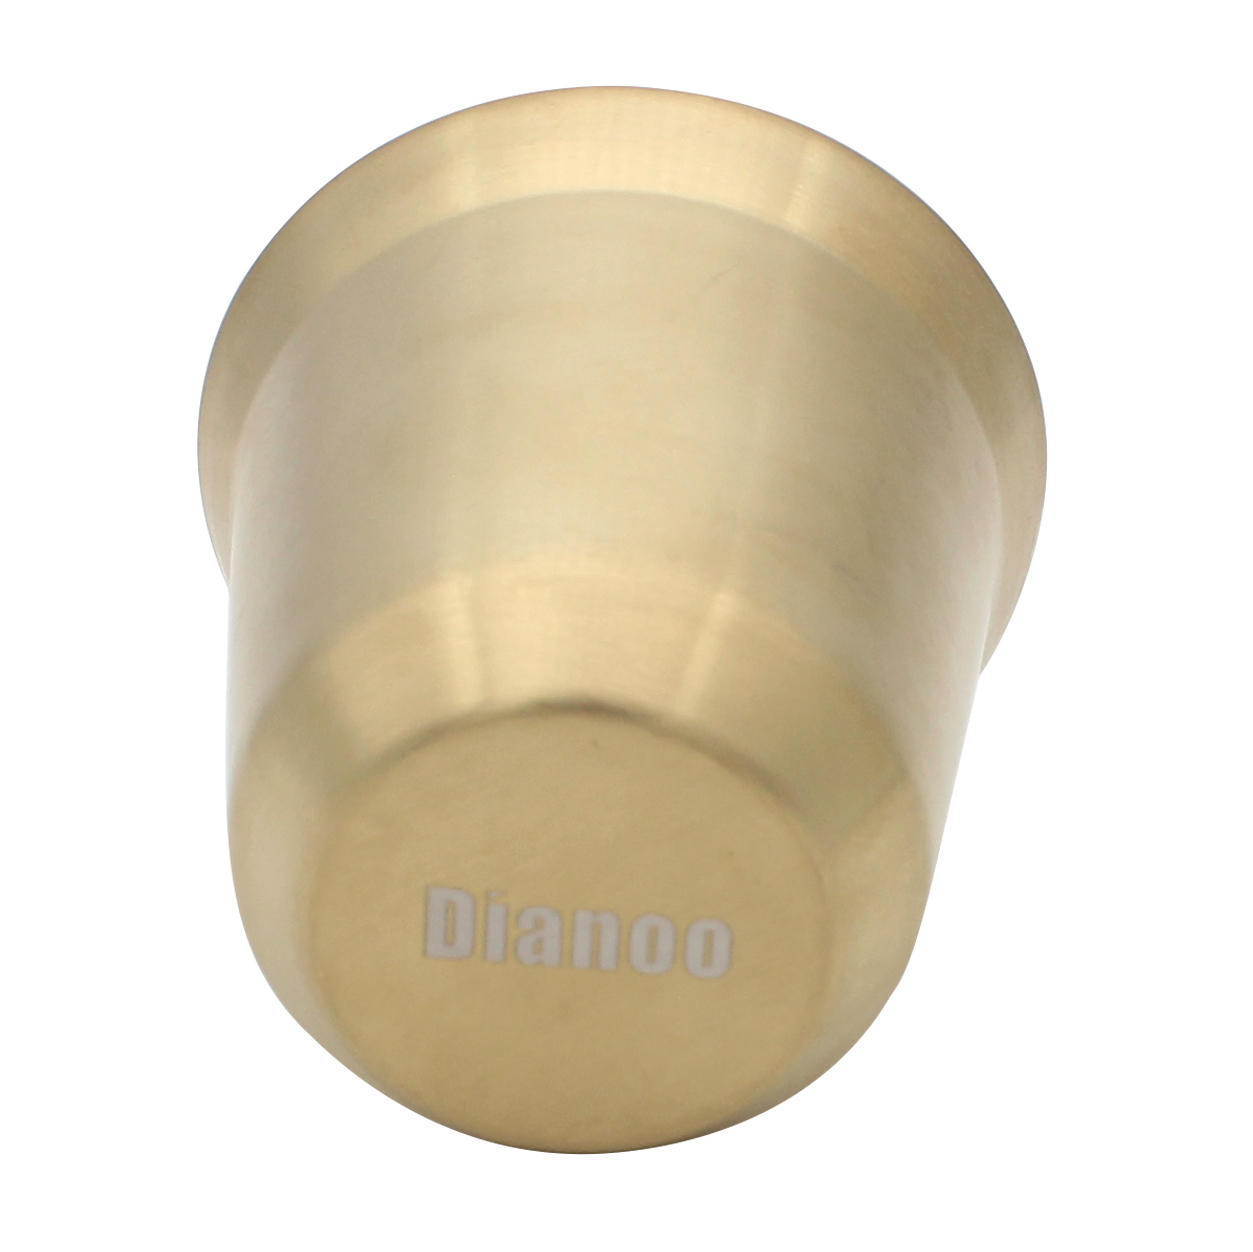 Dianoo Coffee Cup Stainless Steel Espresso Cups Double Wall Thermally Insulated Capsule Coffee Mug Light gold